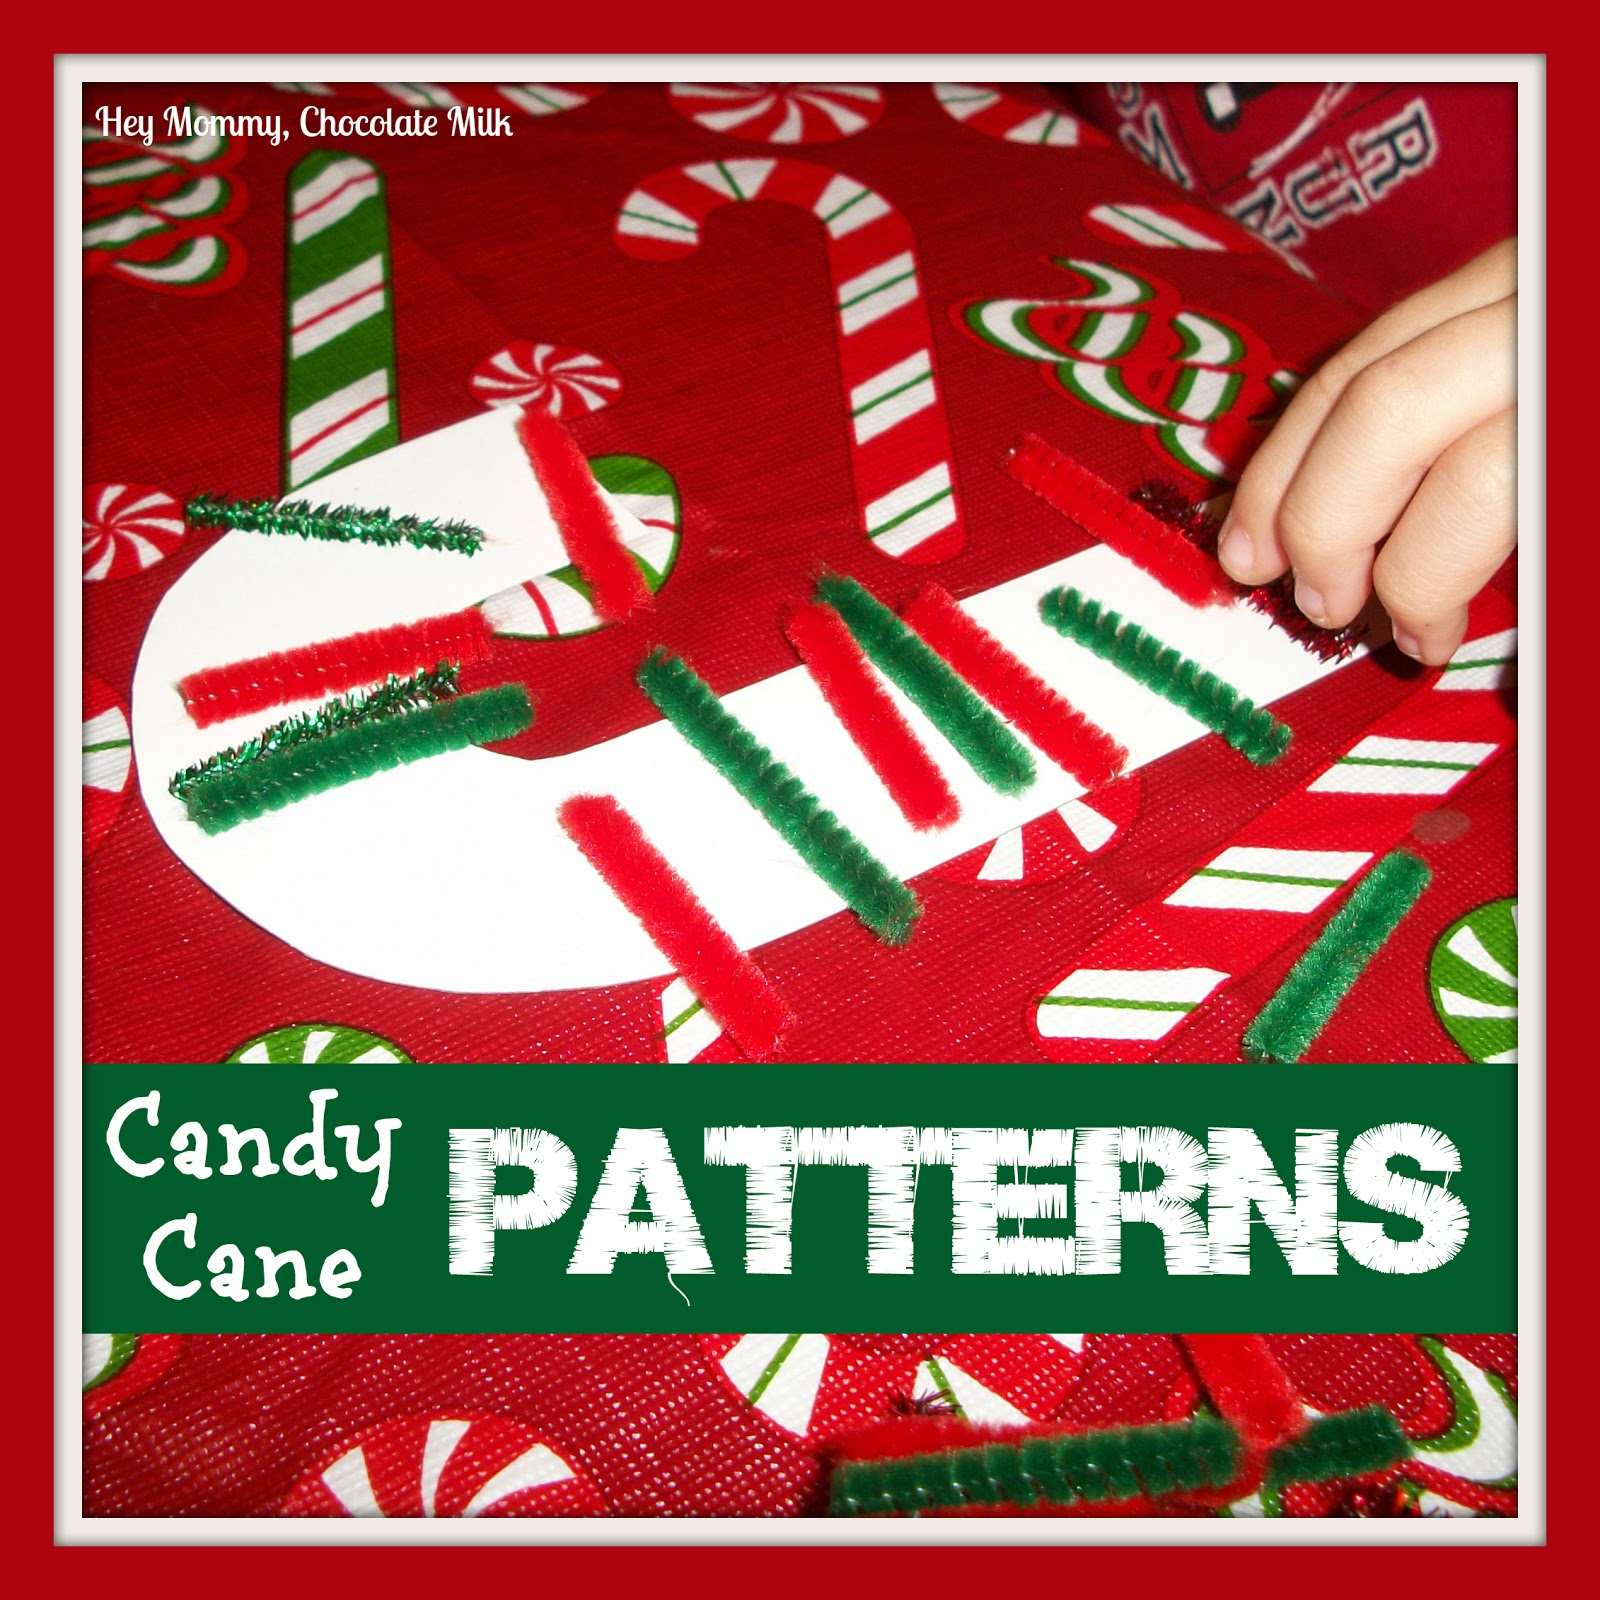 Hey Mommy Chocolate Milk Candy Cane Patterns